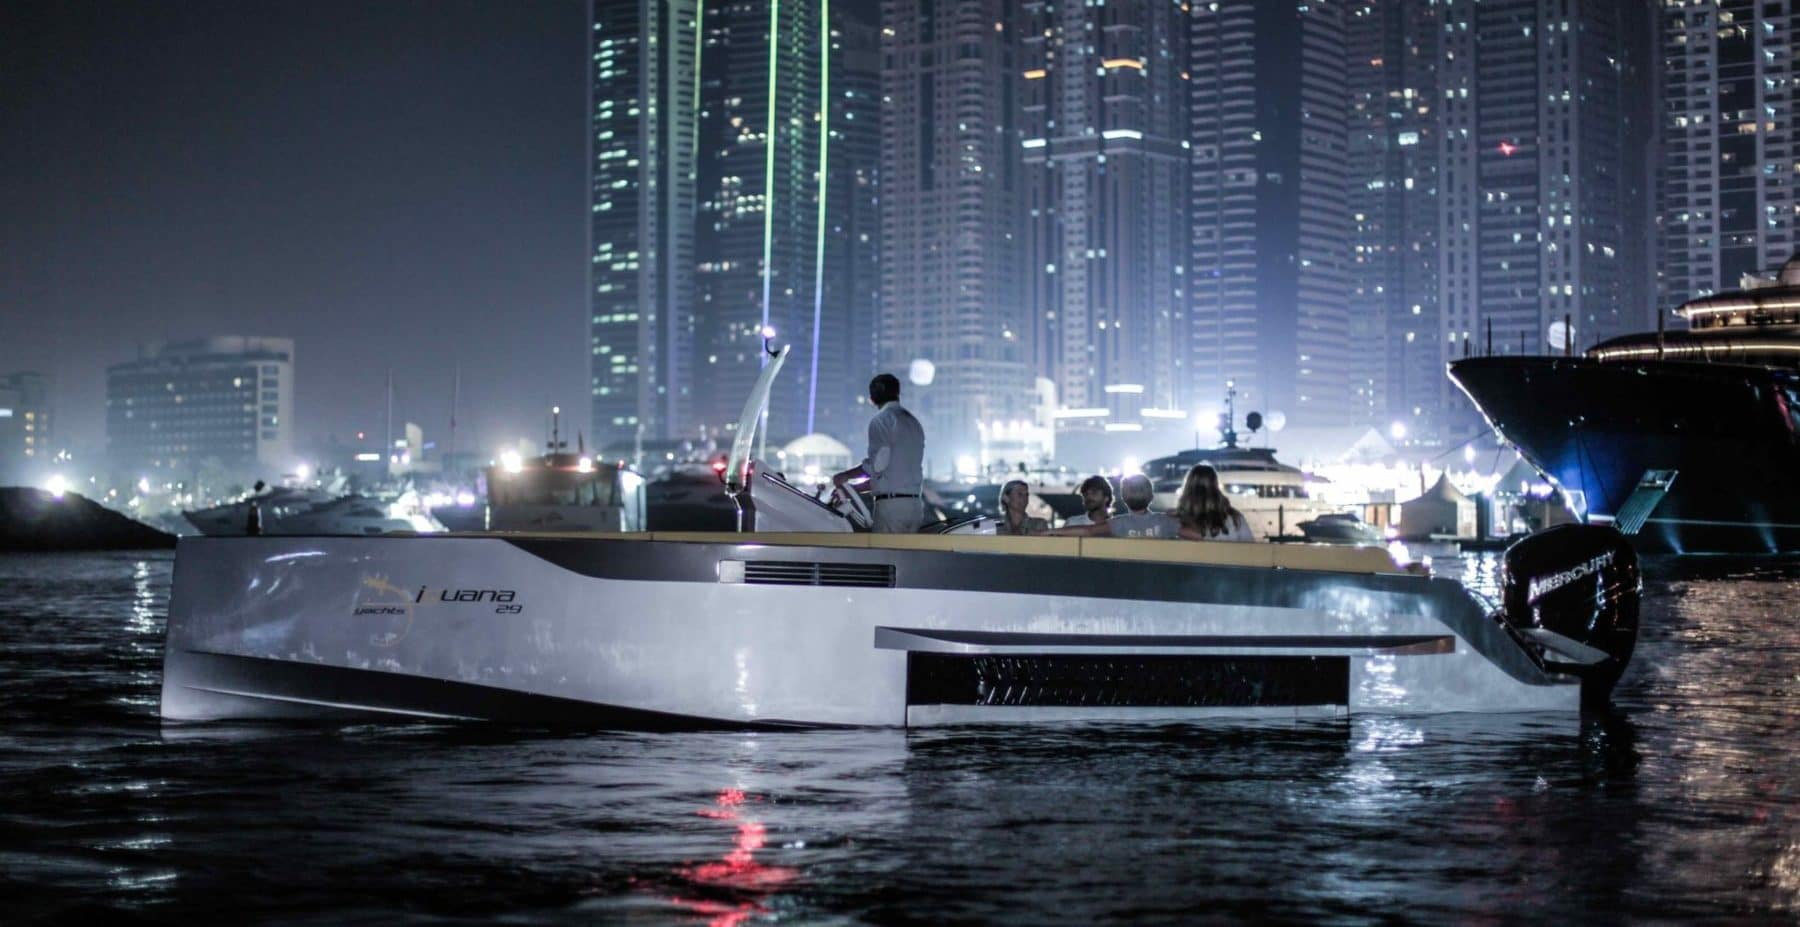 Night sailing aboard the Iguana Original in Dubai